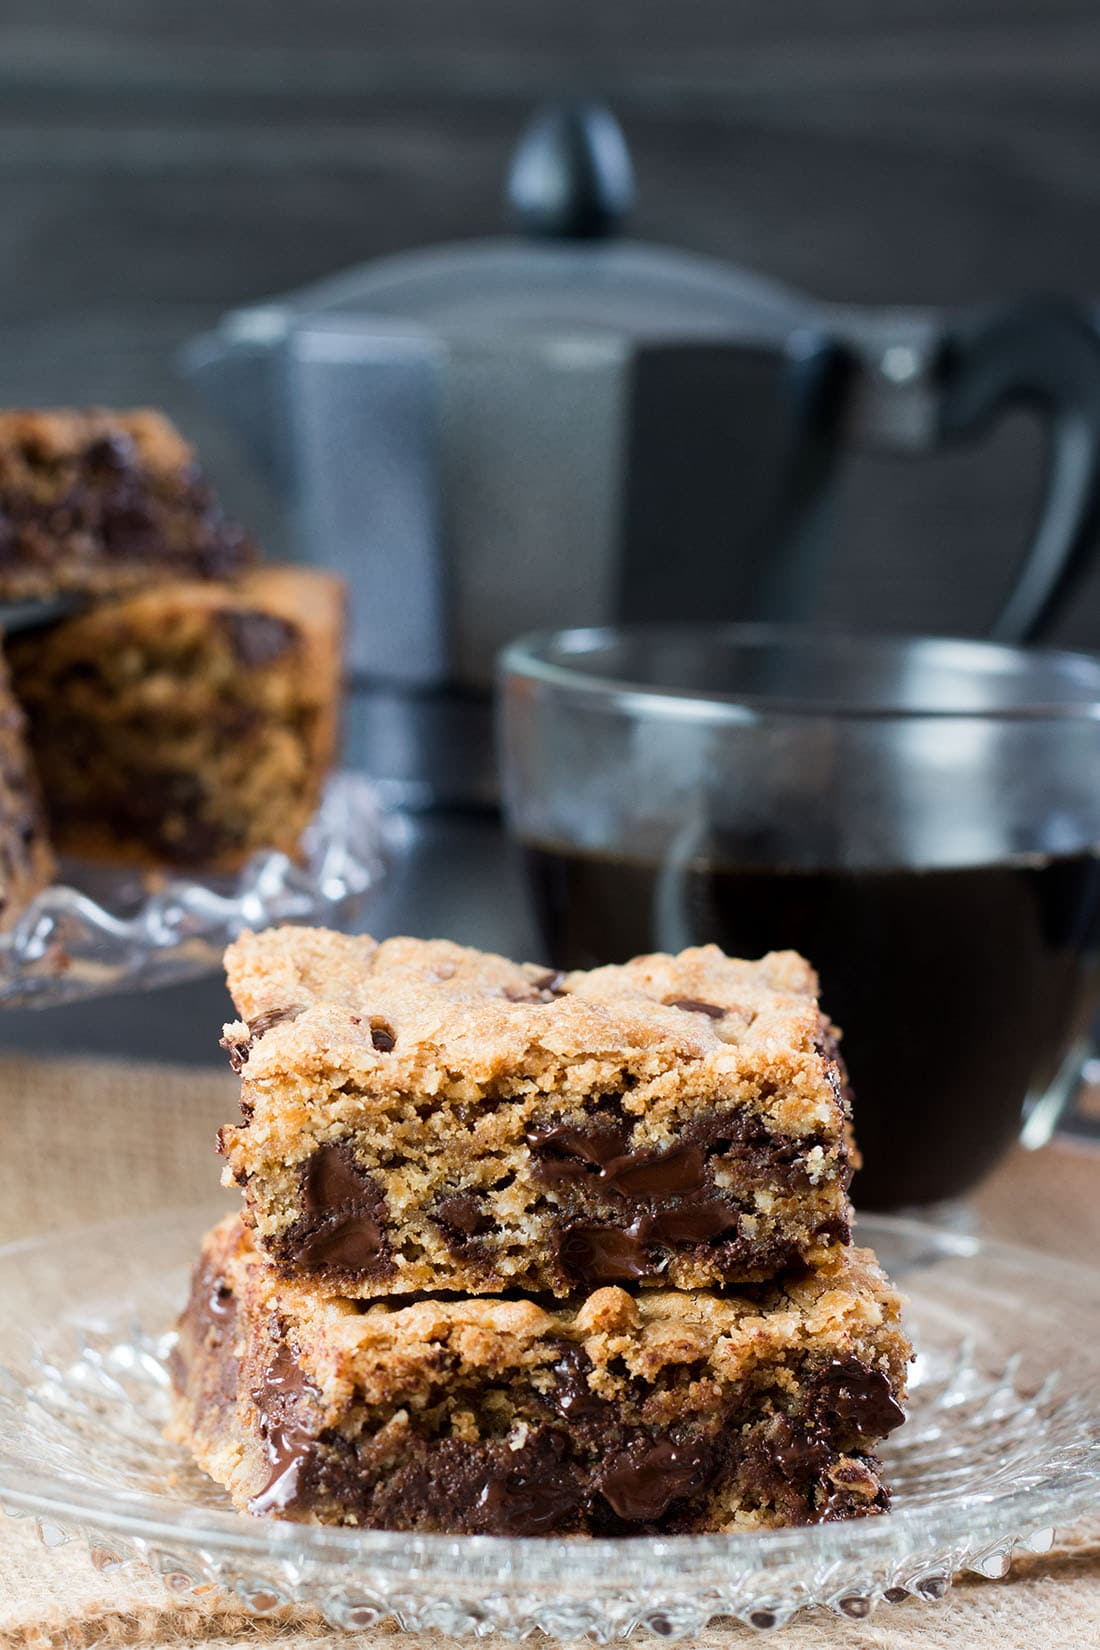 Chocolate Chip Spiced Oatmeal Cookie Bars - Scrumptious in a pan!